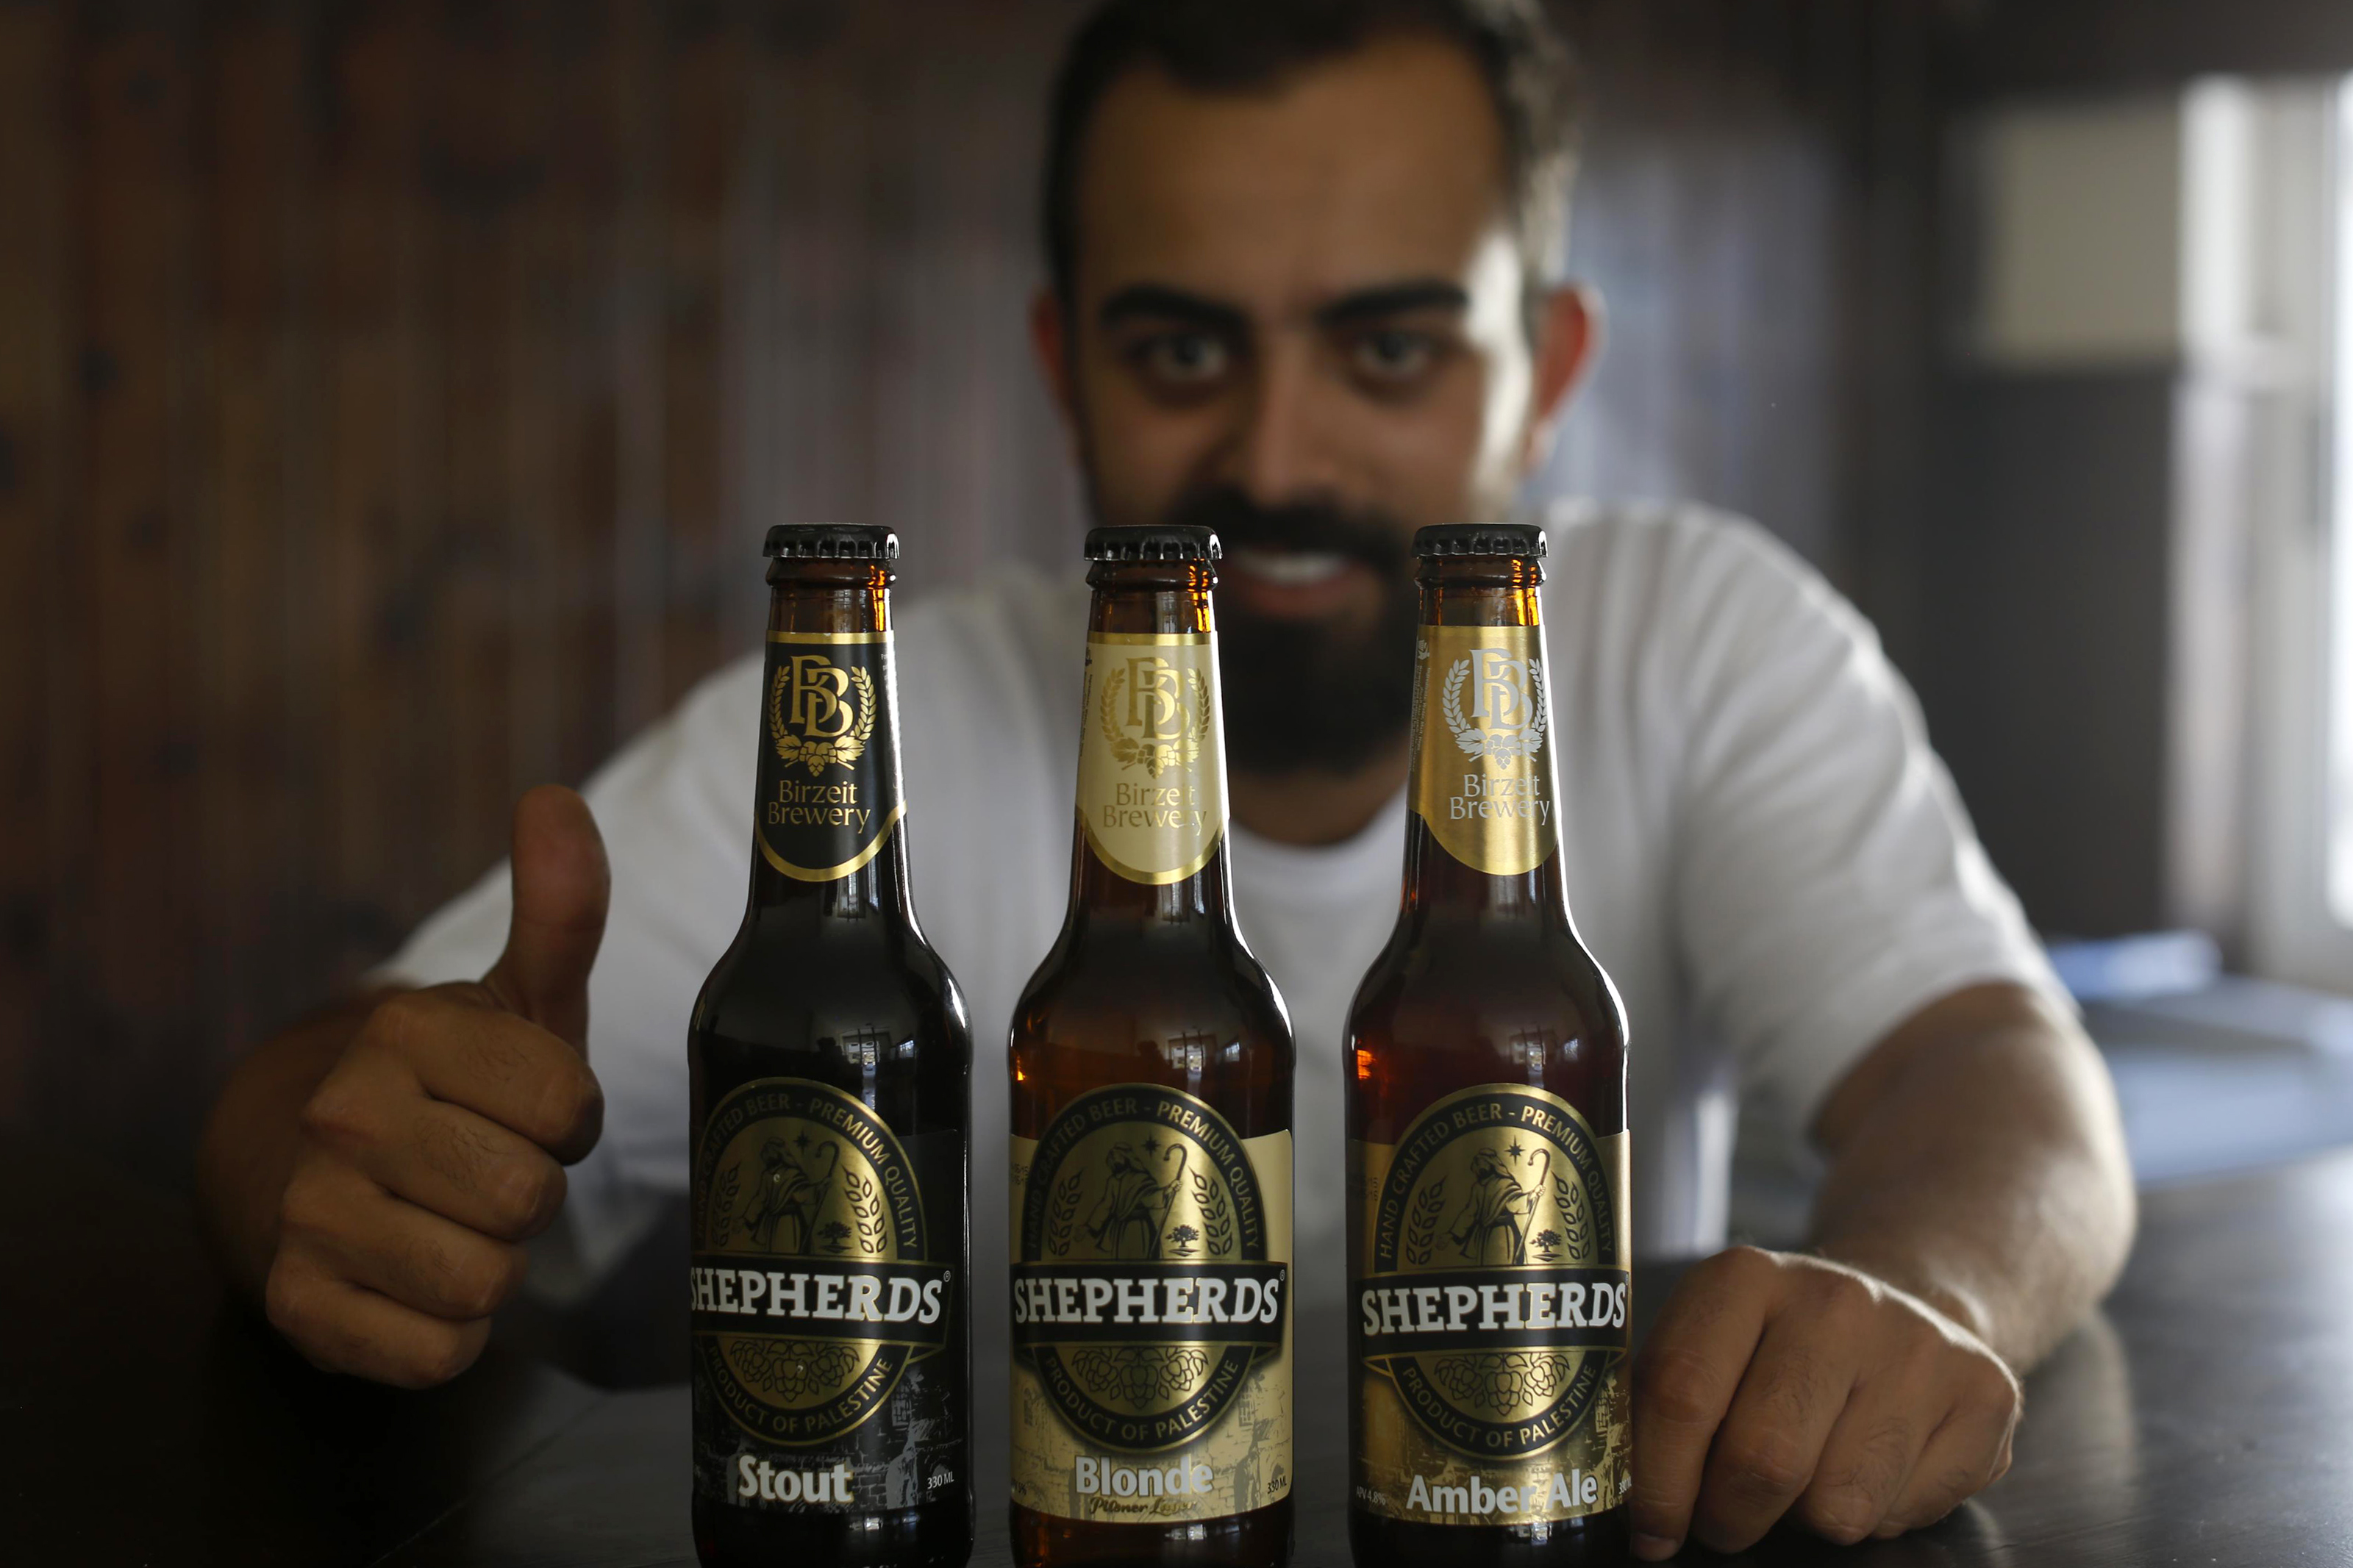 Alaa Sayej fell in love with beer while studying in the UK. He started brewing from home and sold some beers to his landlady before returning to Palestine. (Photo courtesy of Shepherds)